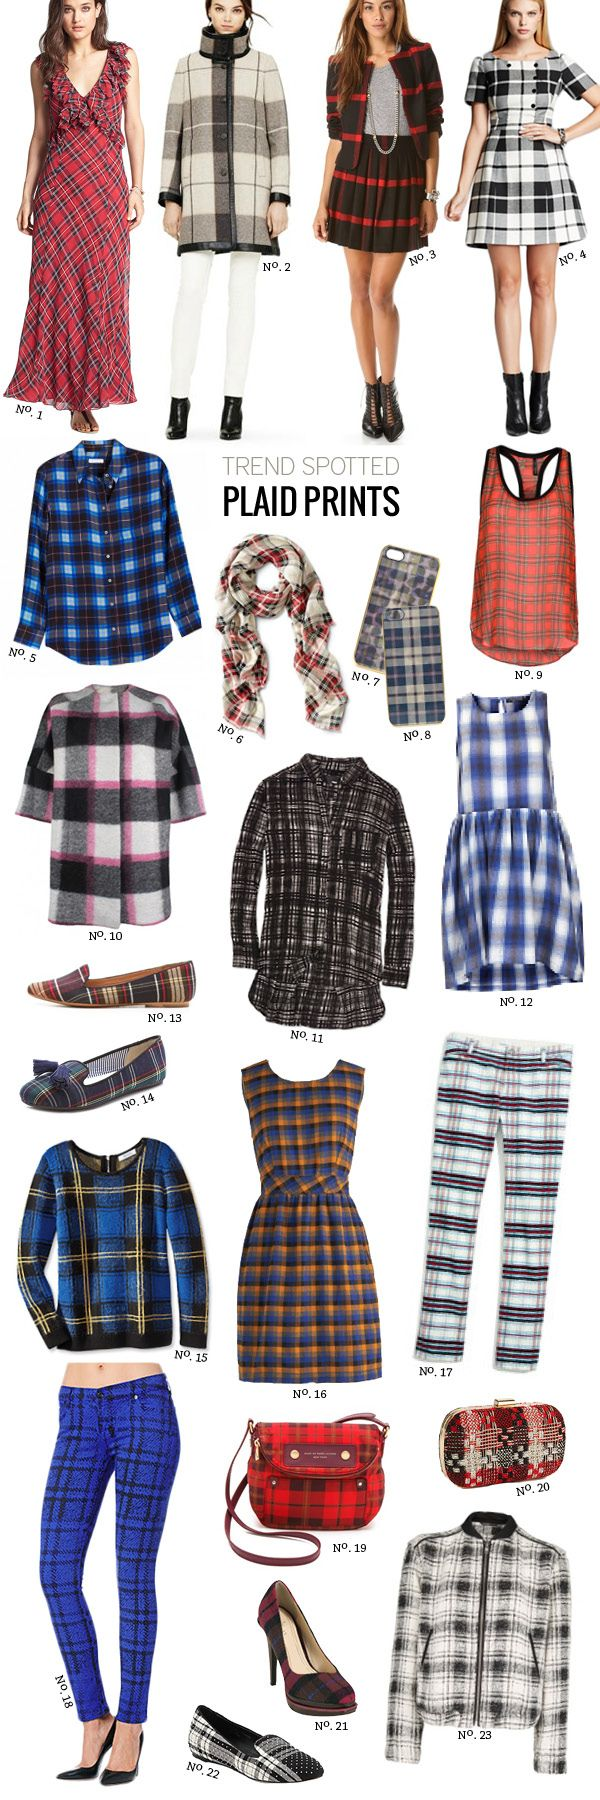 plaid for fall, anyone? we're scooping up all the Kilty Pleasure we can get our hands on!